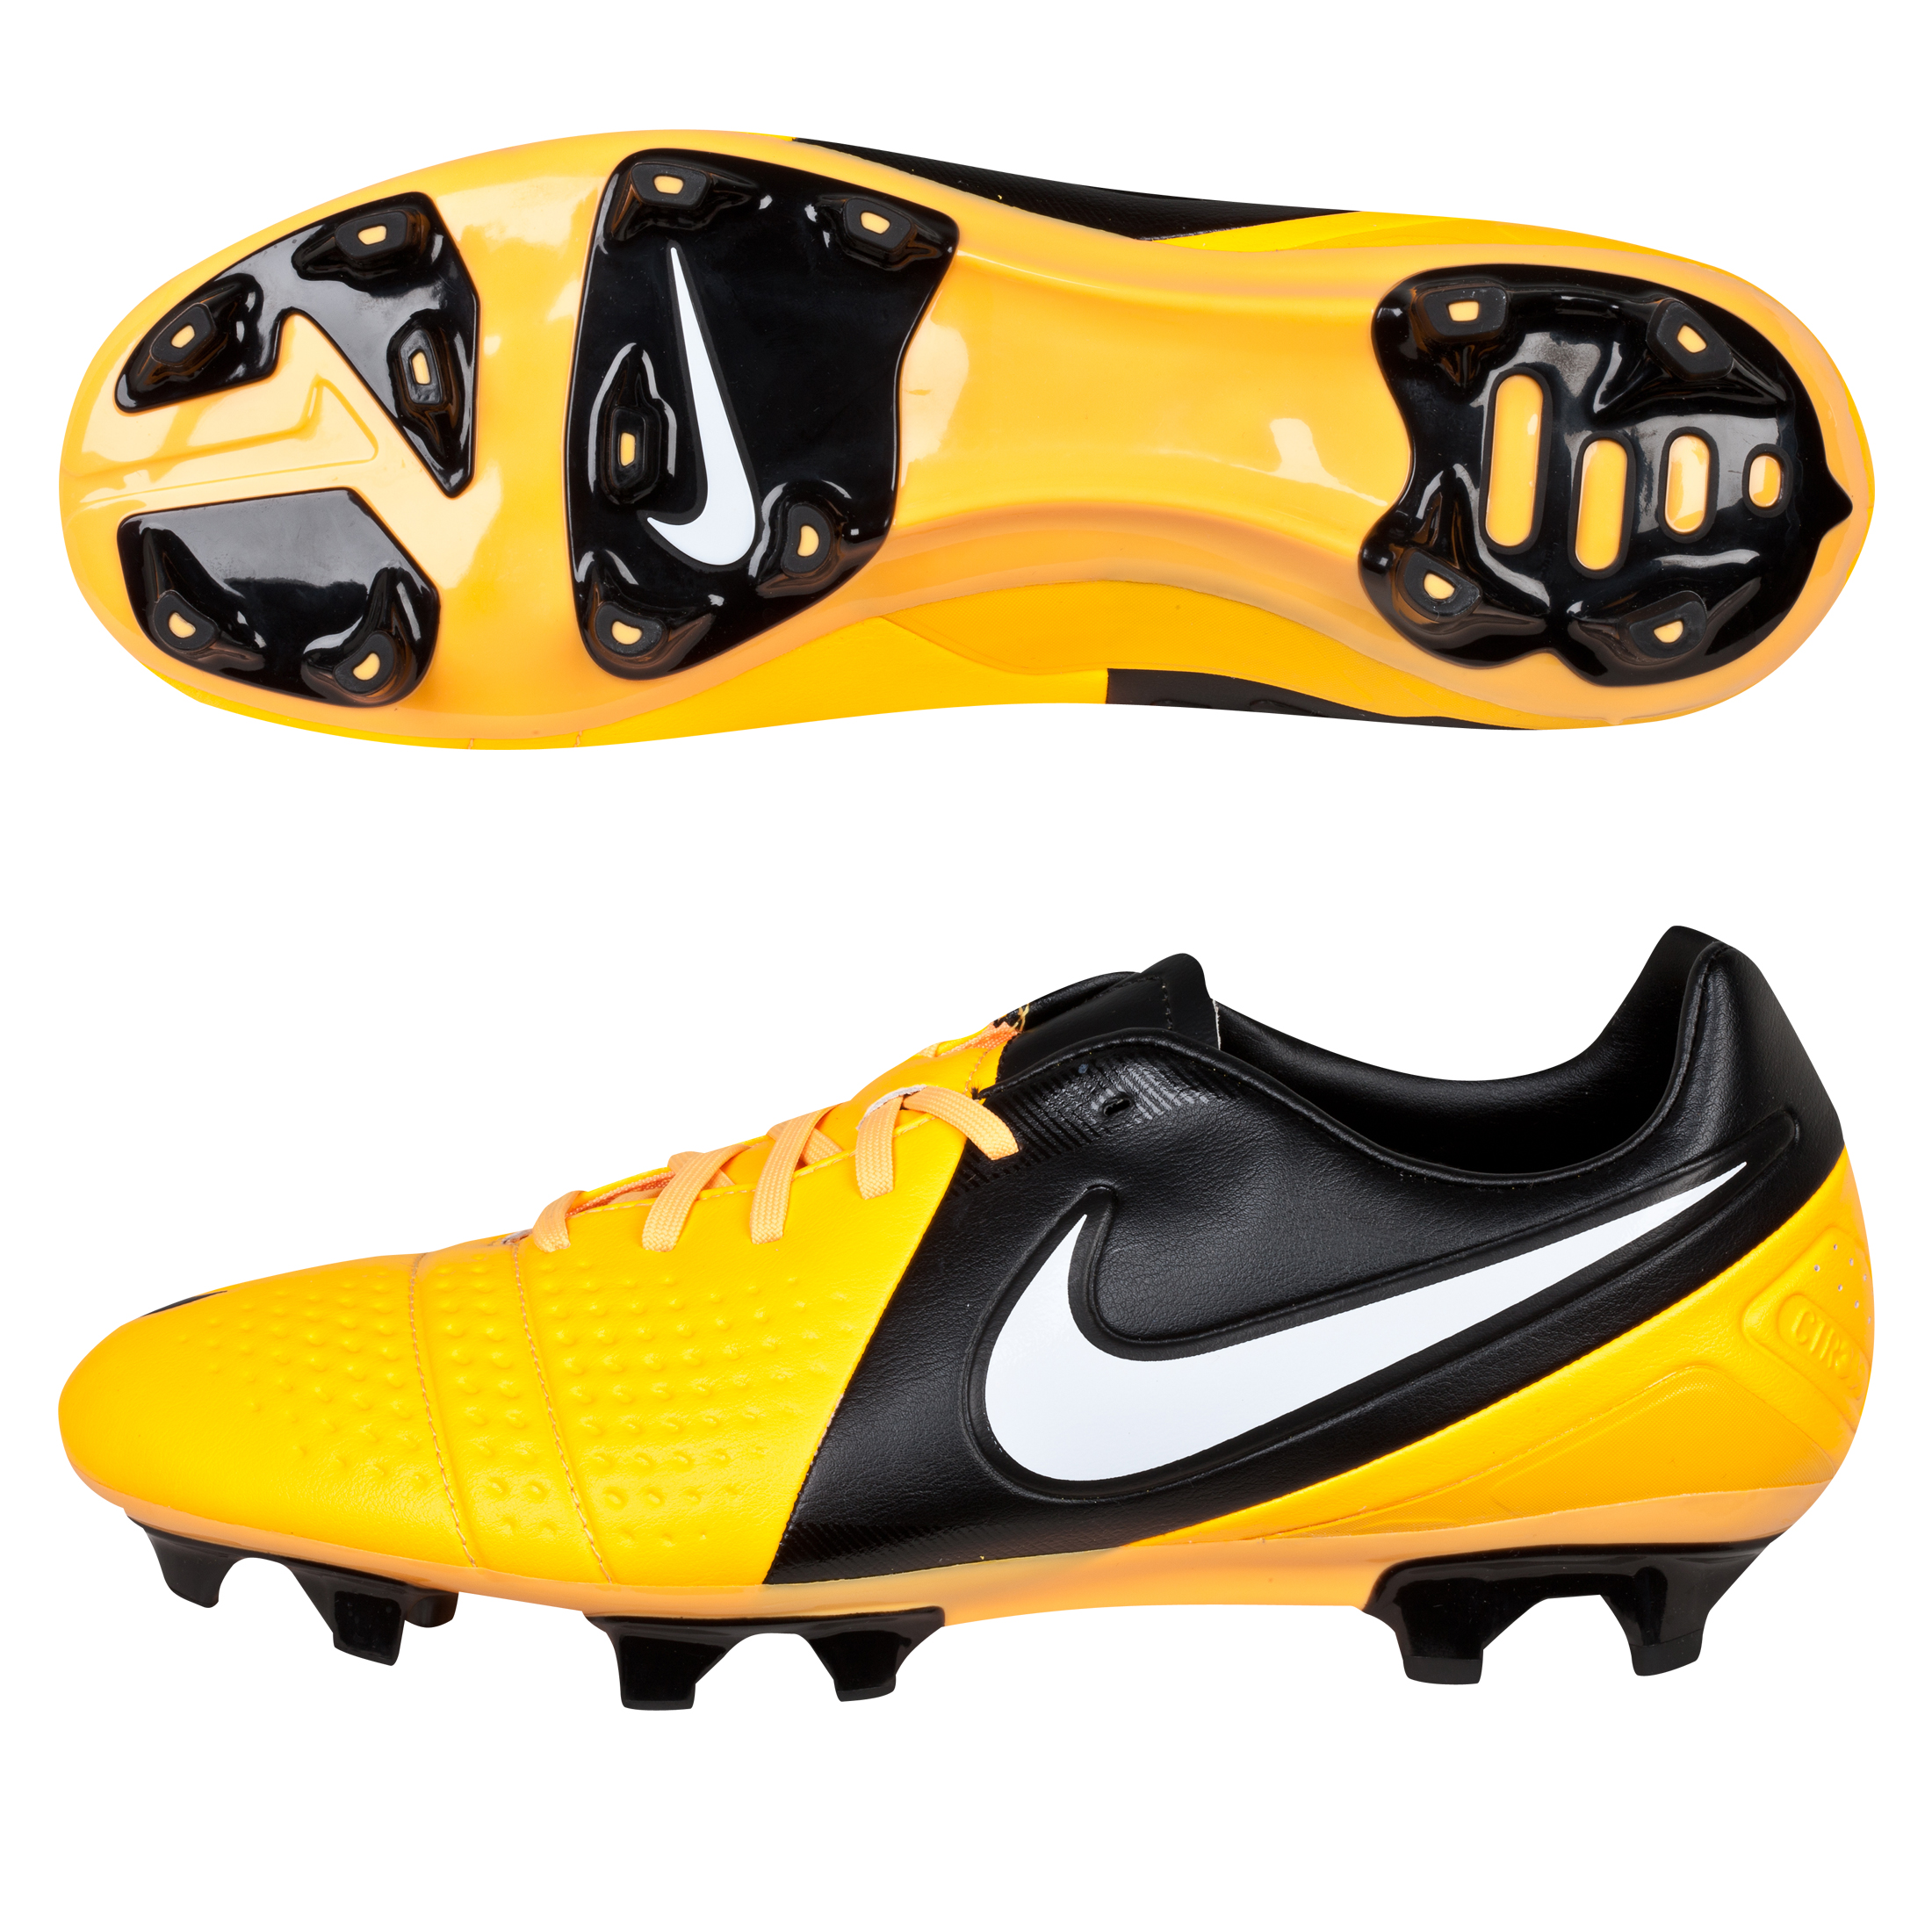 Nike CTR360 Trequartista III Firm Ground Football Boots - Citrus/White/Black